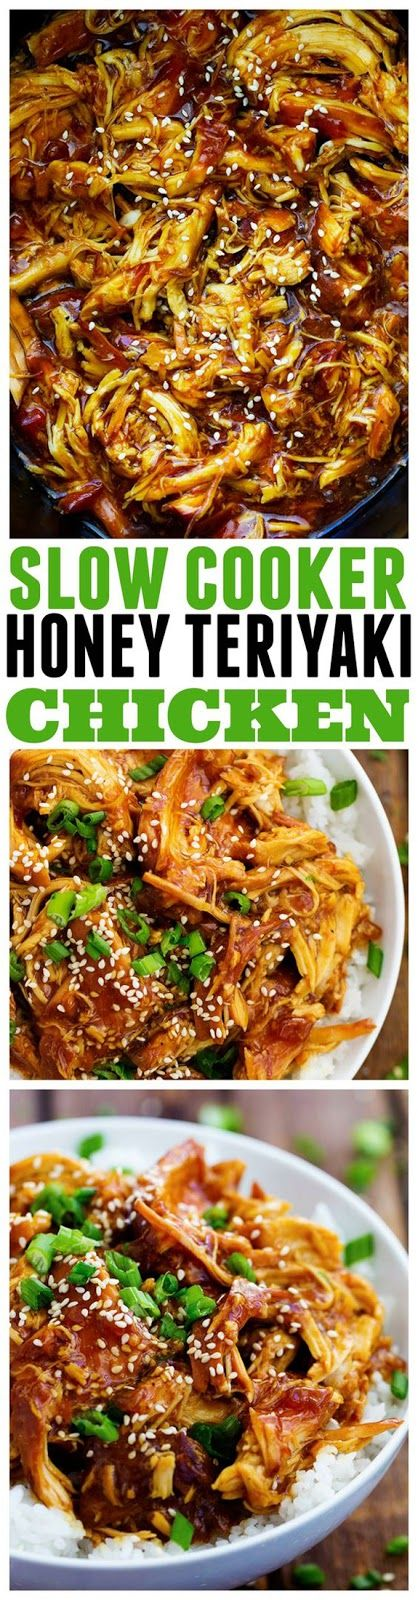 Slow Cooker Honey Teriyaki Chicken | Dailyciosa